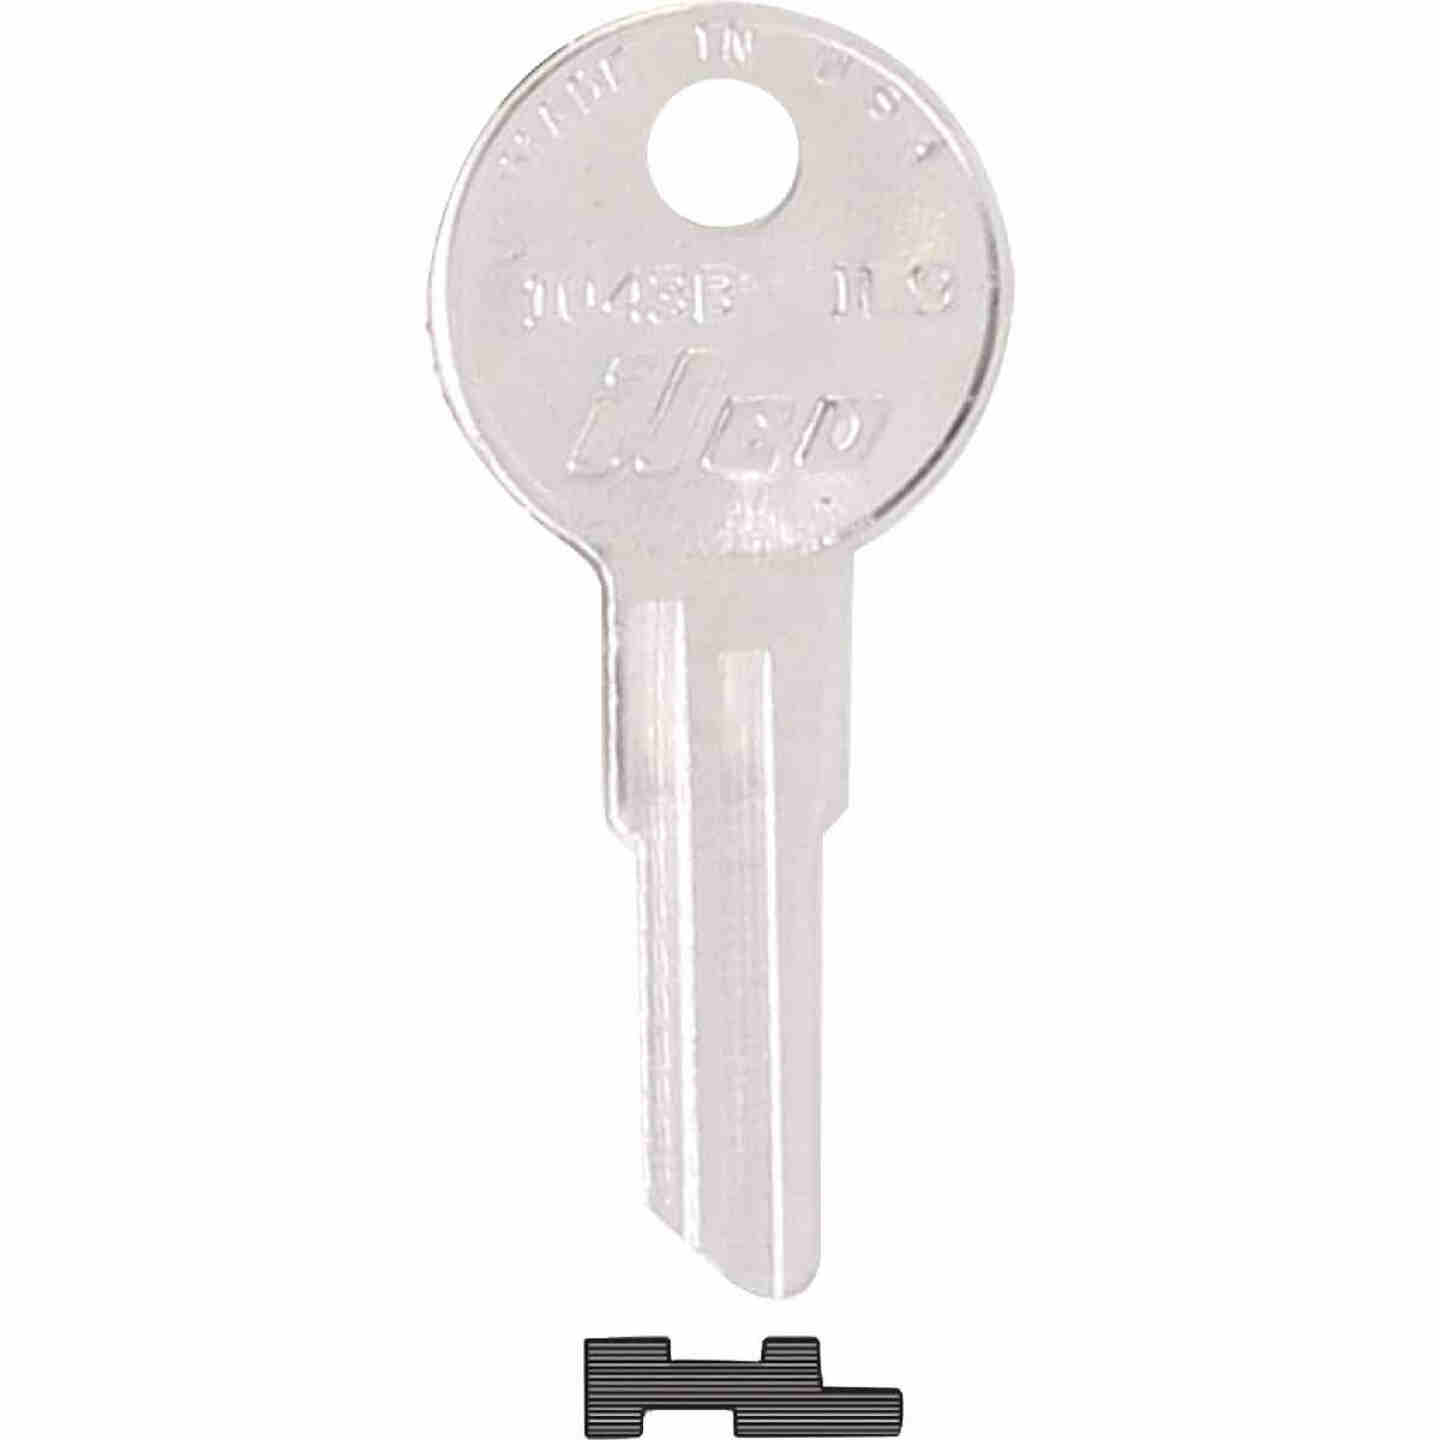 ILCO Illinois Nickel Plated File Cabinet Key, IL9 (10-Pack) Image 1